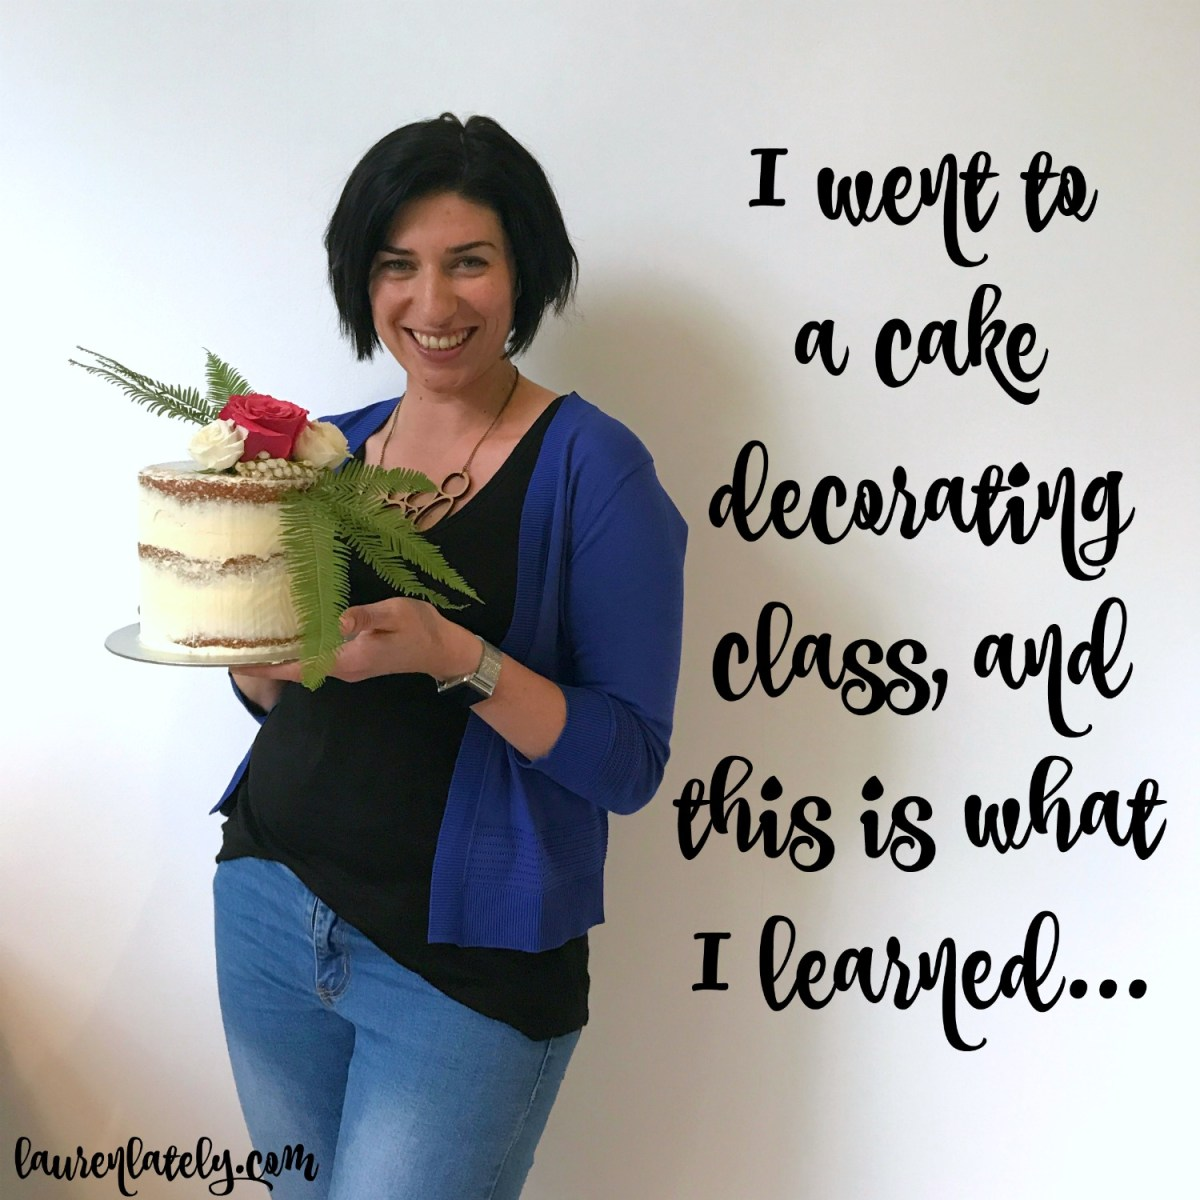 I went to a cake decorating class, and this is what I learned...